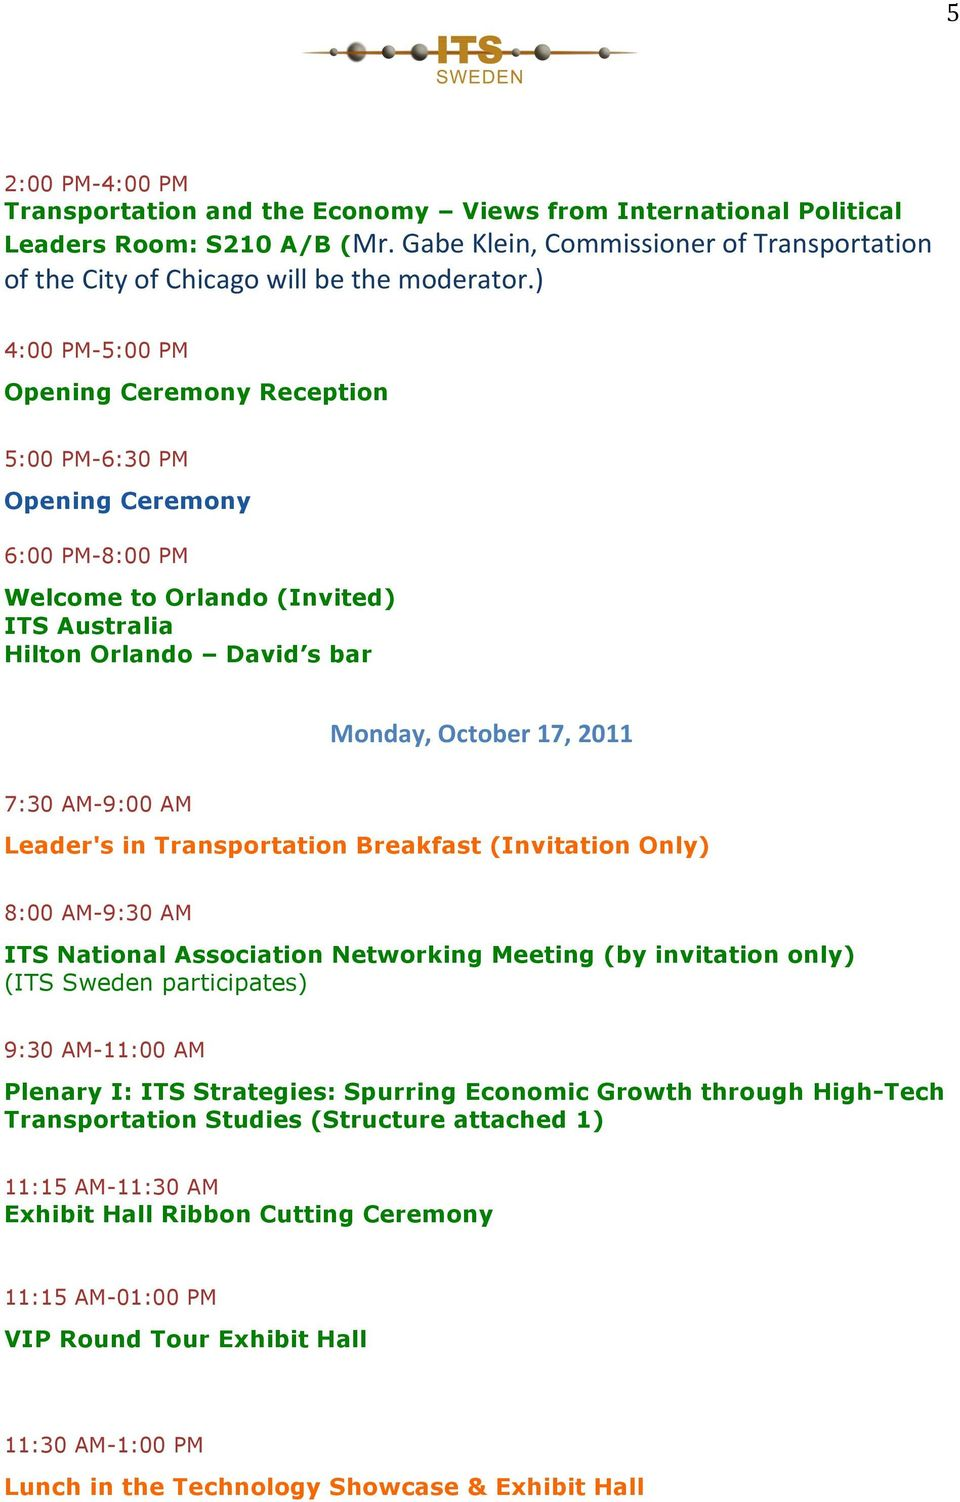 AM-9:00 AM Leader's in Transportation Breakfast (Invitation Only) 8:00 AM-9:30 AM ITS National Association Networking Meeting (by invitation only) (ITS Sweden participates) 9:30 AM-11:00 AM Plenary